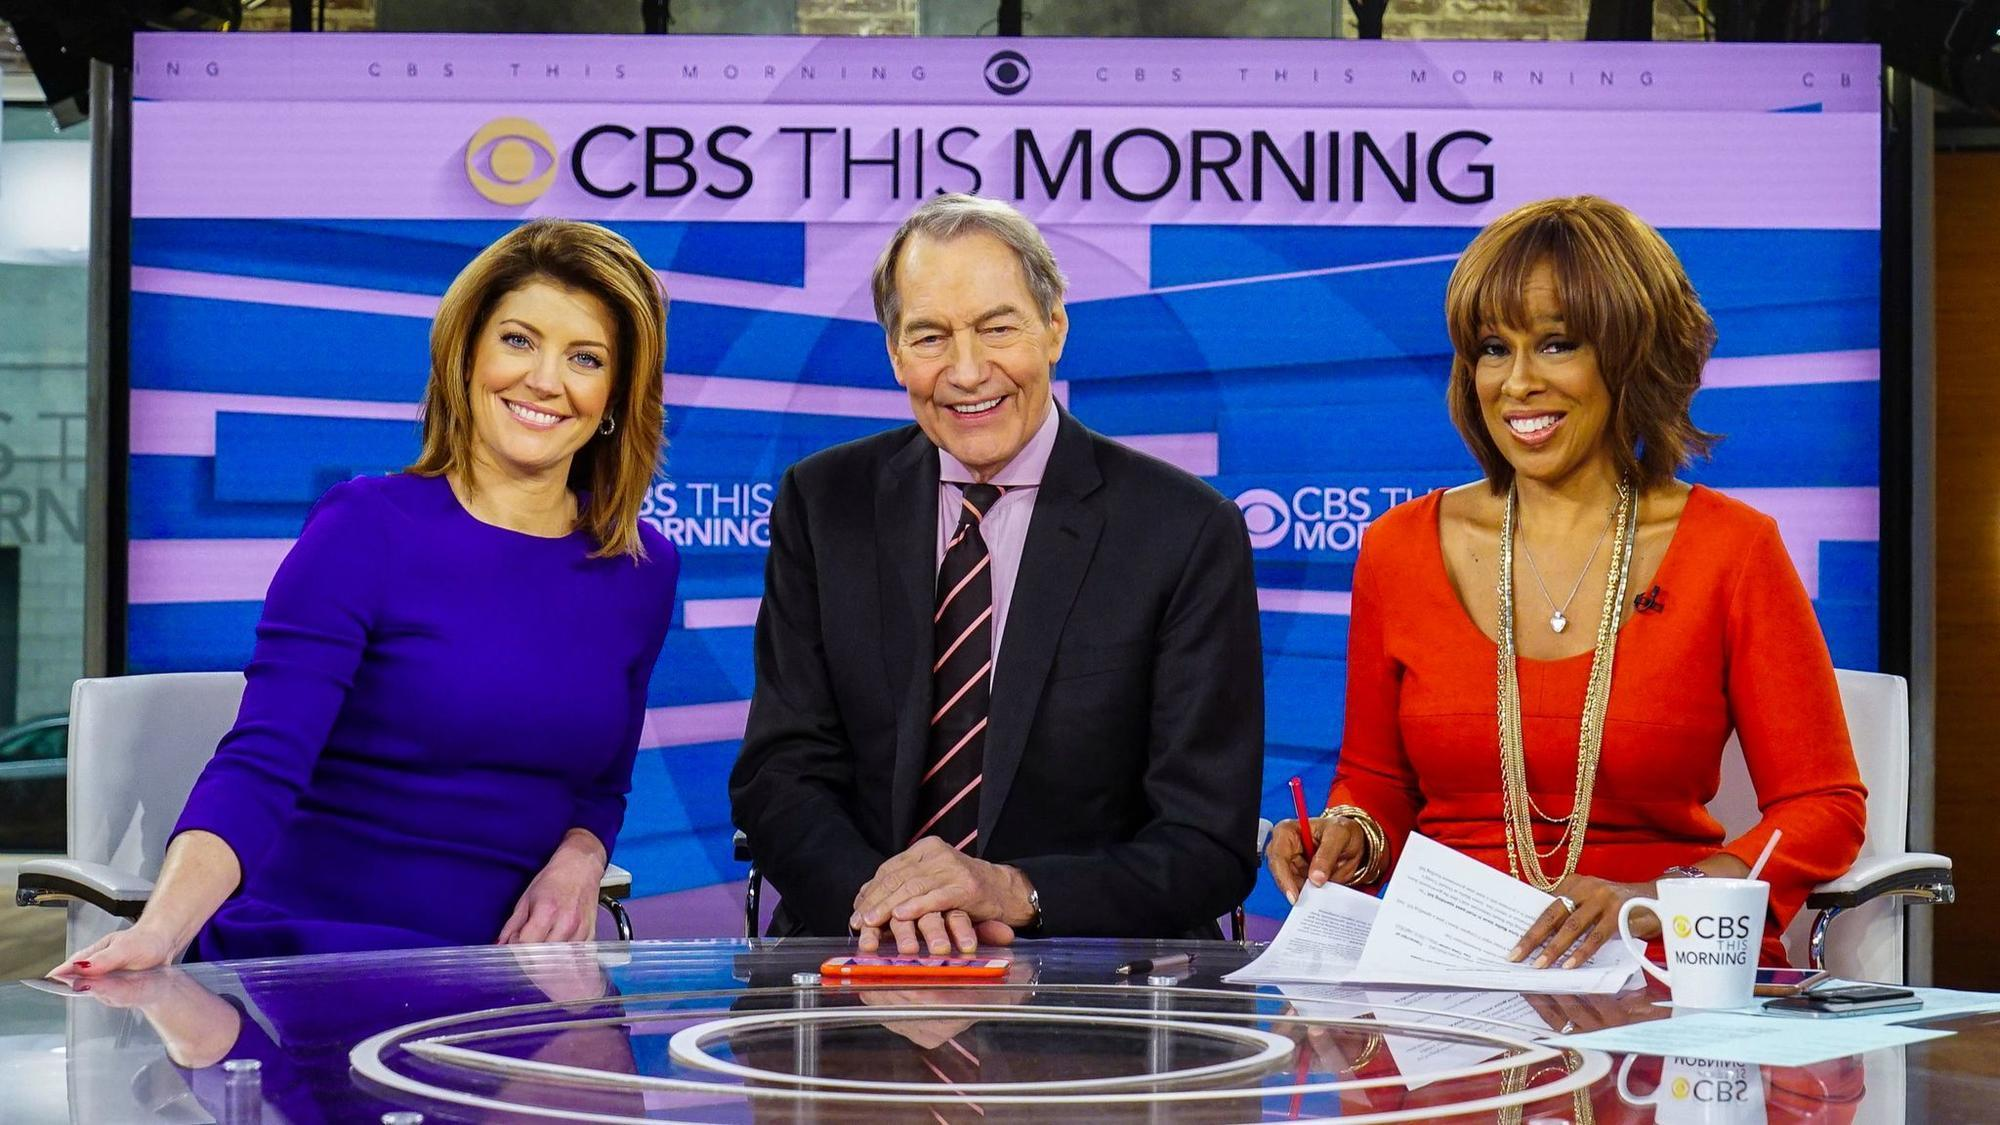 Charlie Rose is accused of sexual harassment of women who worked on his PBS talk show